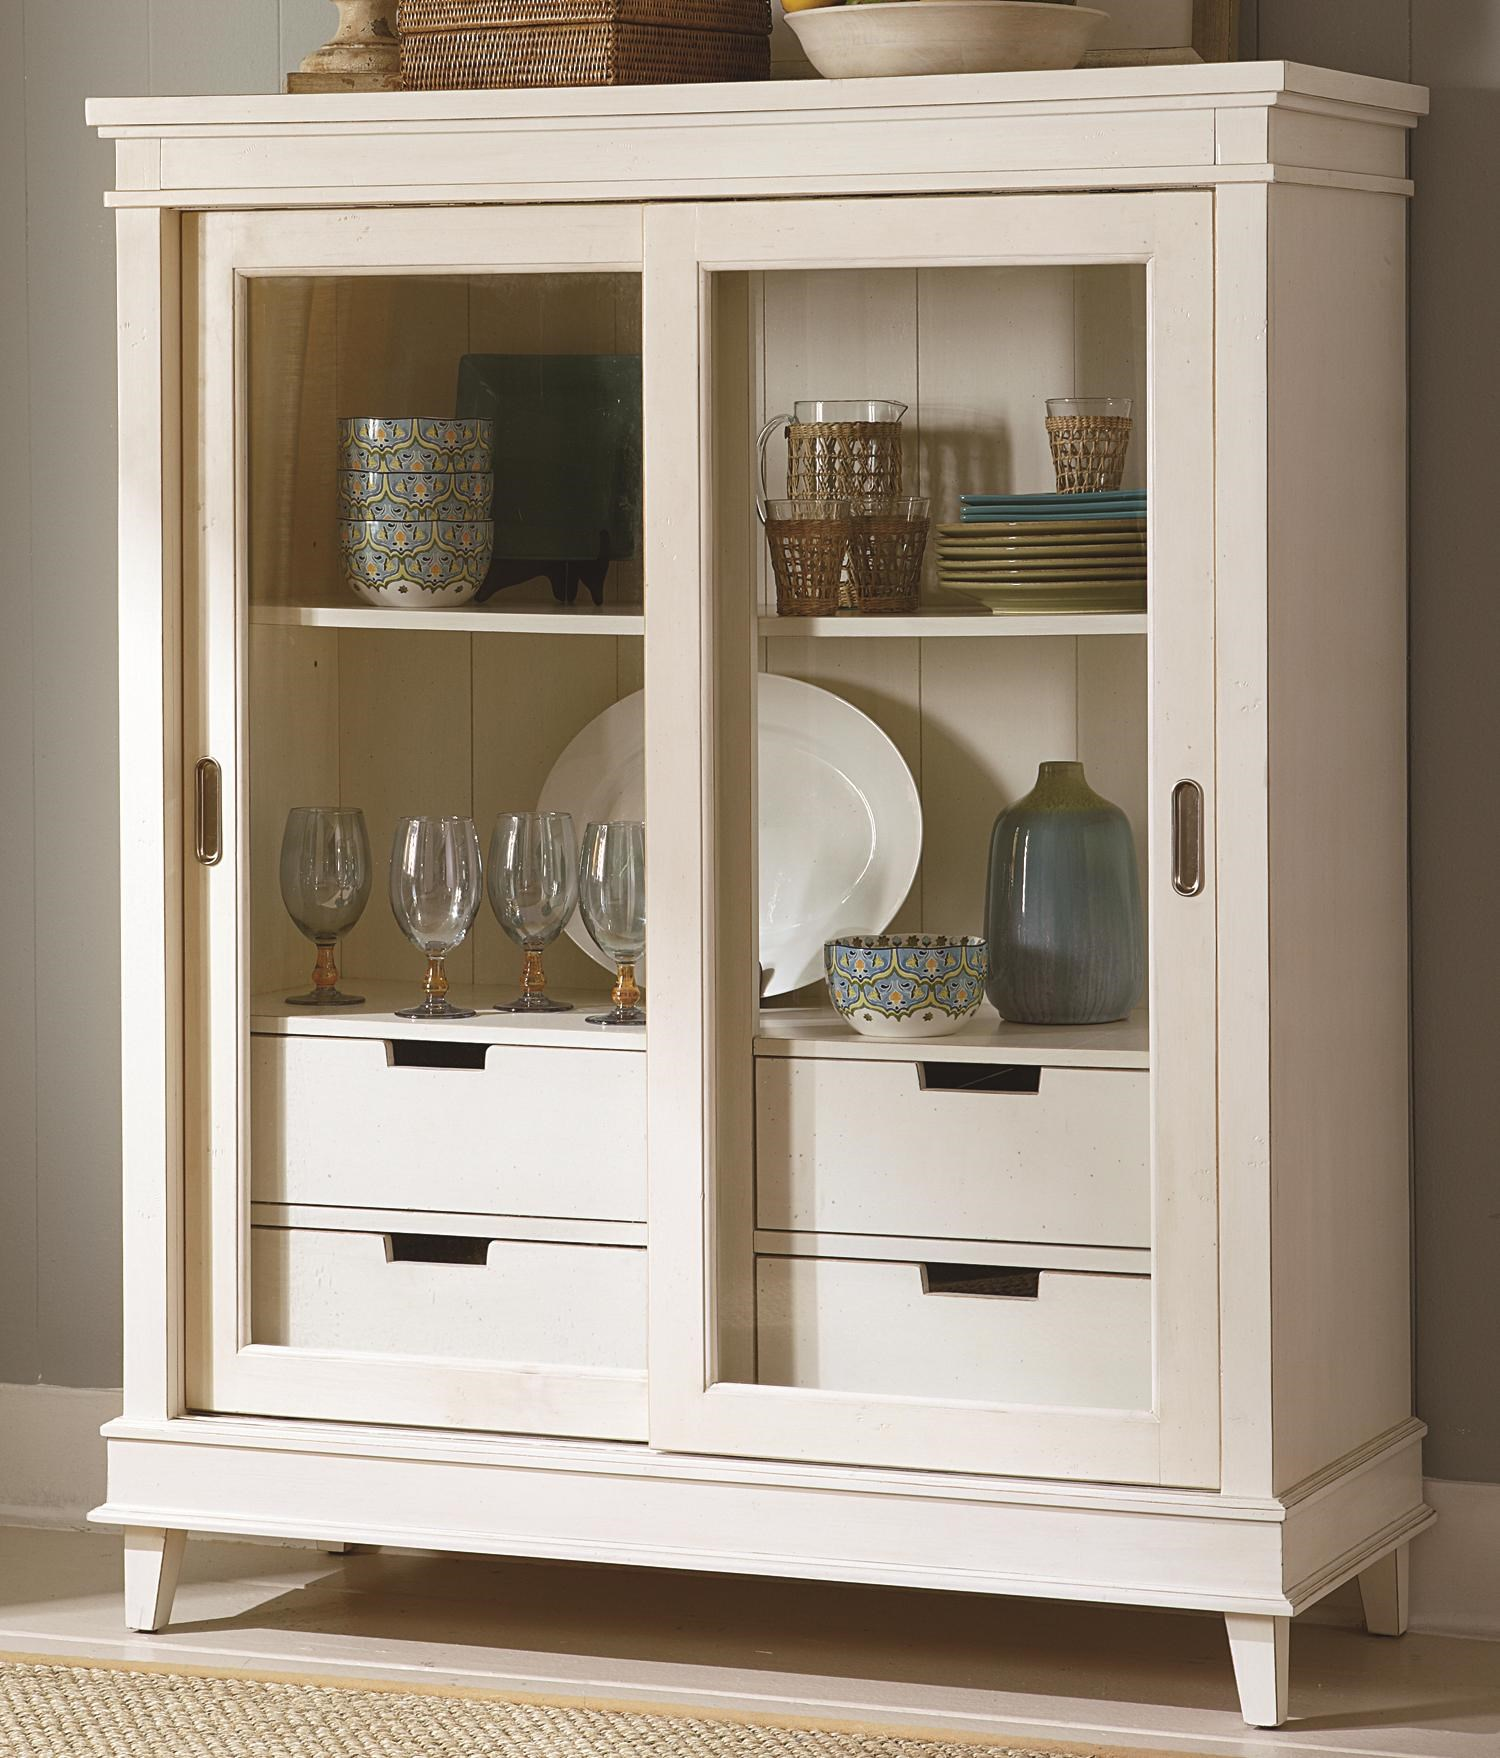 Liberty Furniture Summerhill Sliding Door China Display Cabinet & Liberty Furniture Summerhill Sliding Door China Display Cabinet ...